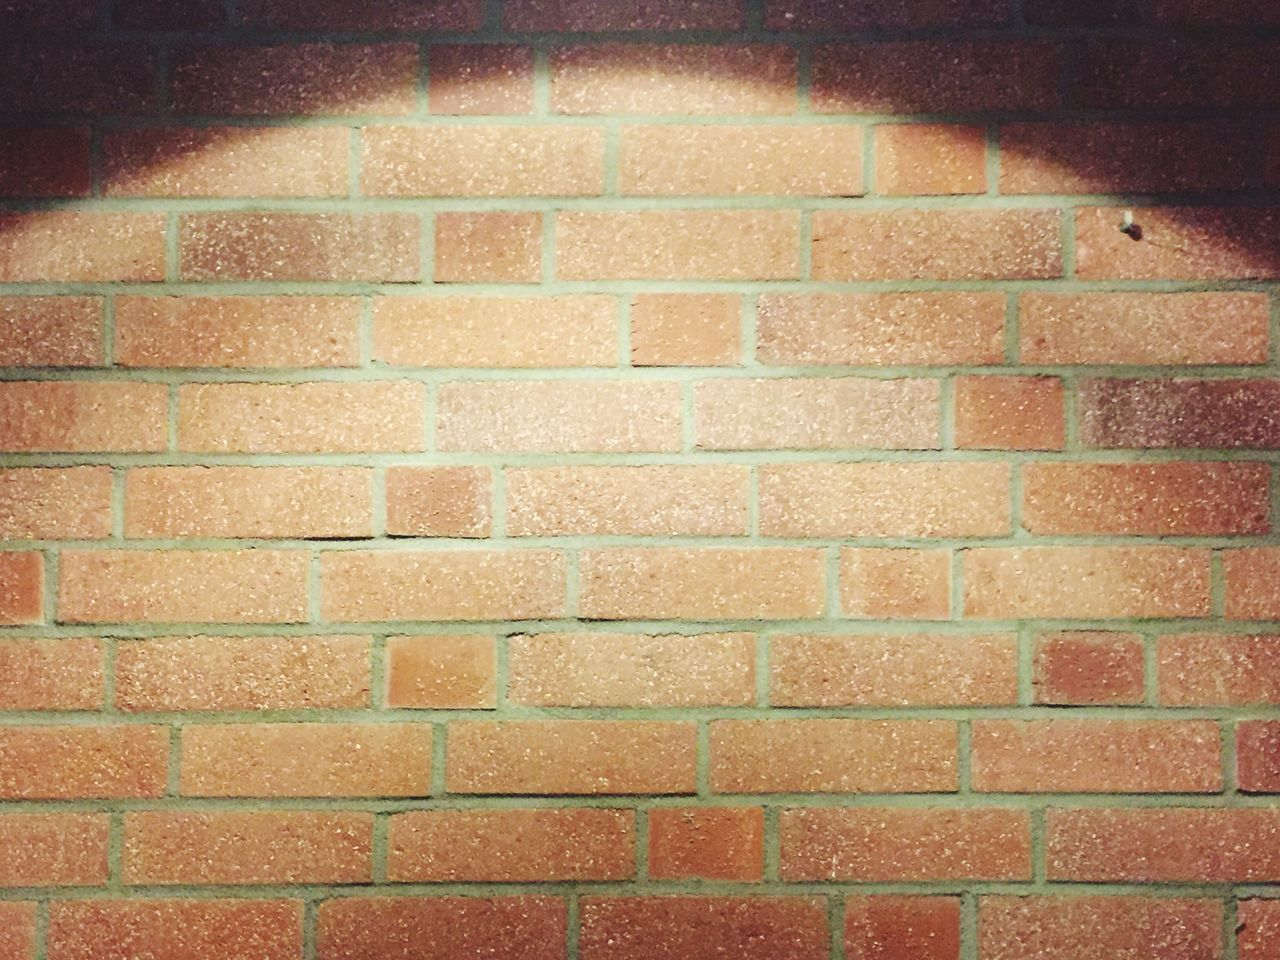 Wall Wand Backgrounds Background Backstein Backsteinwand Red Hintergrund Wall Textures